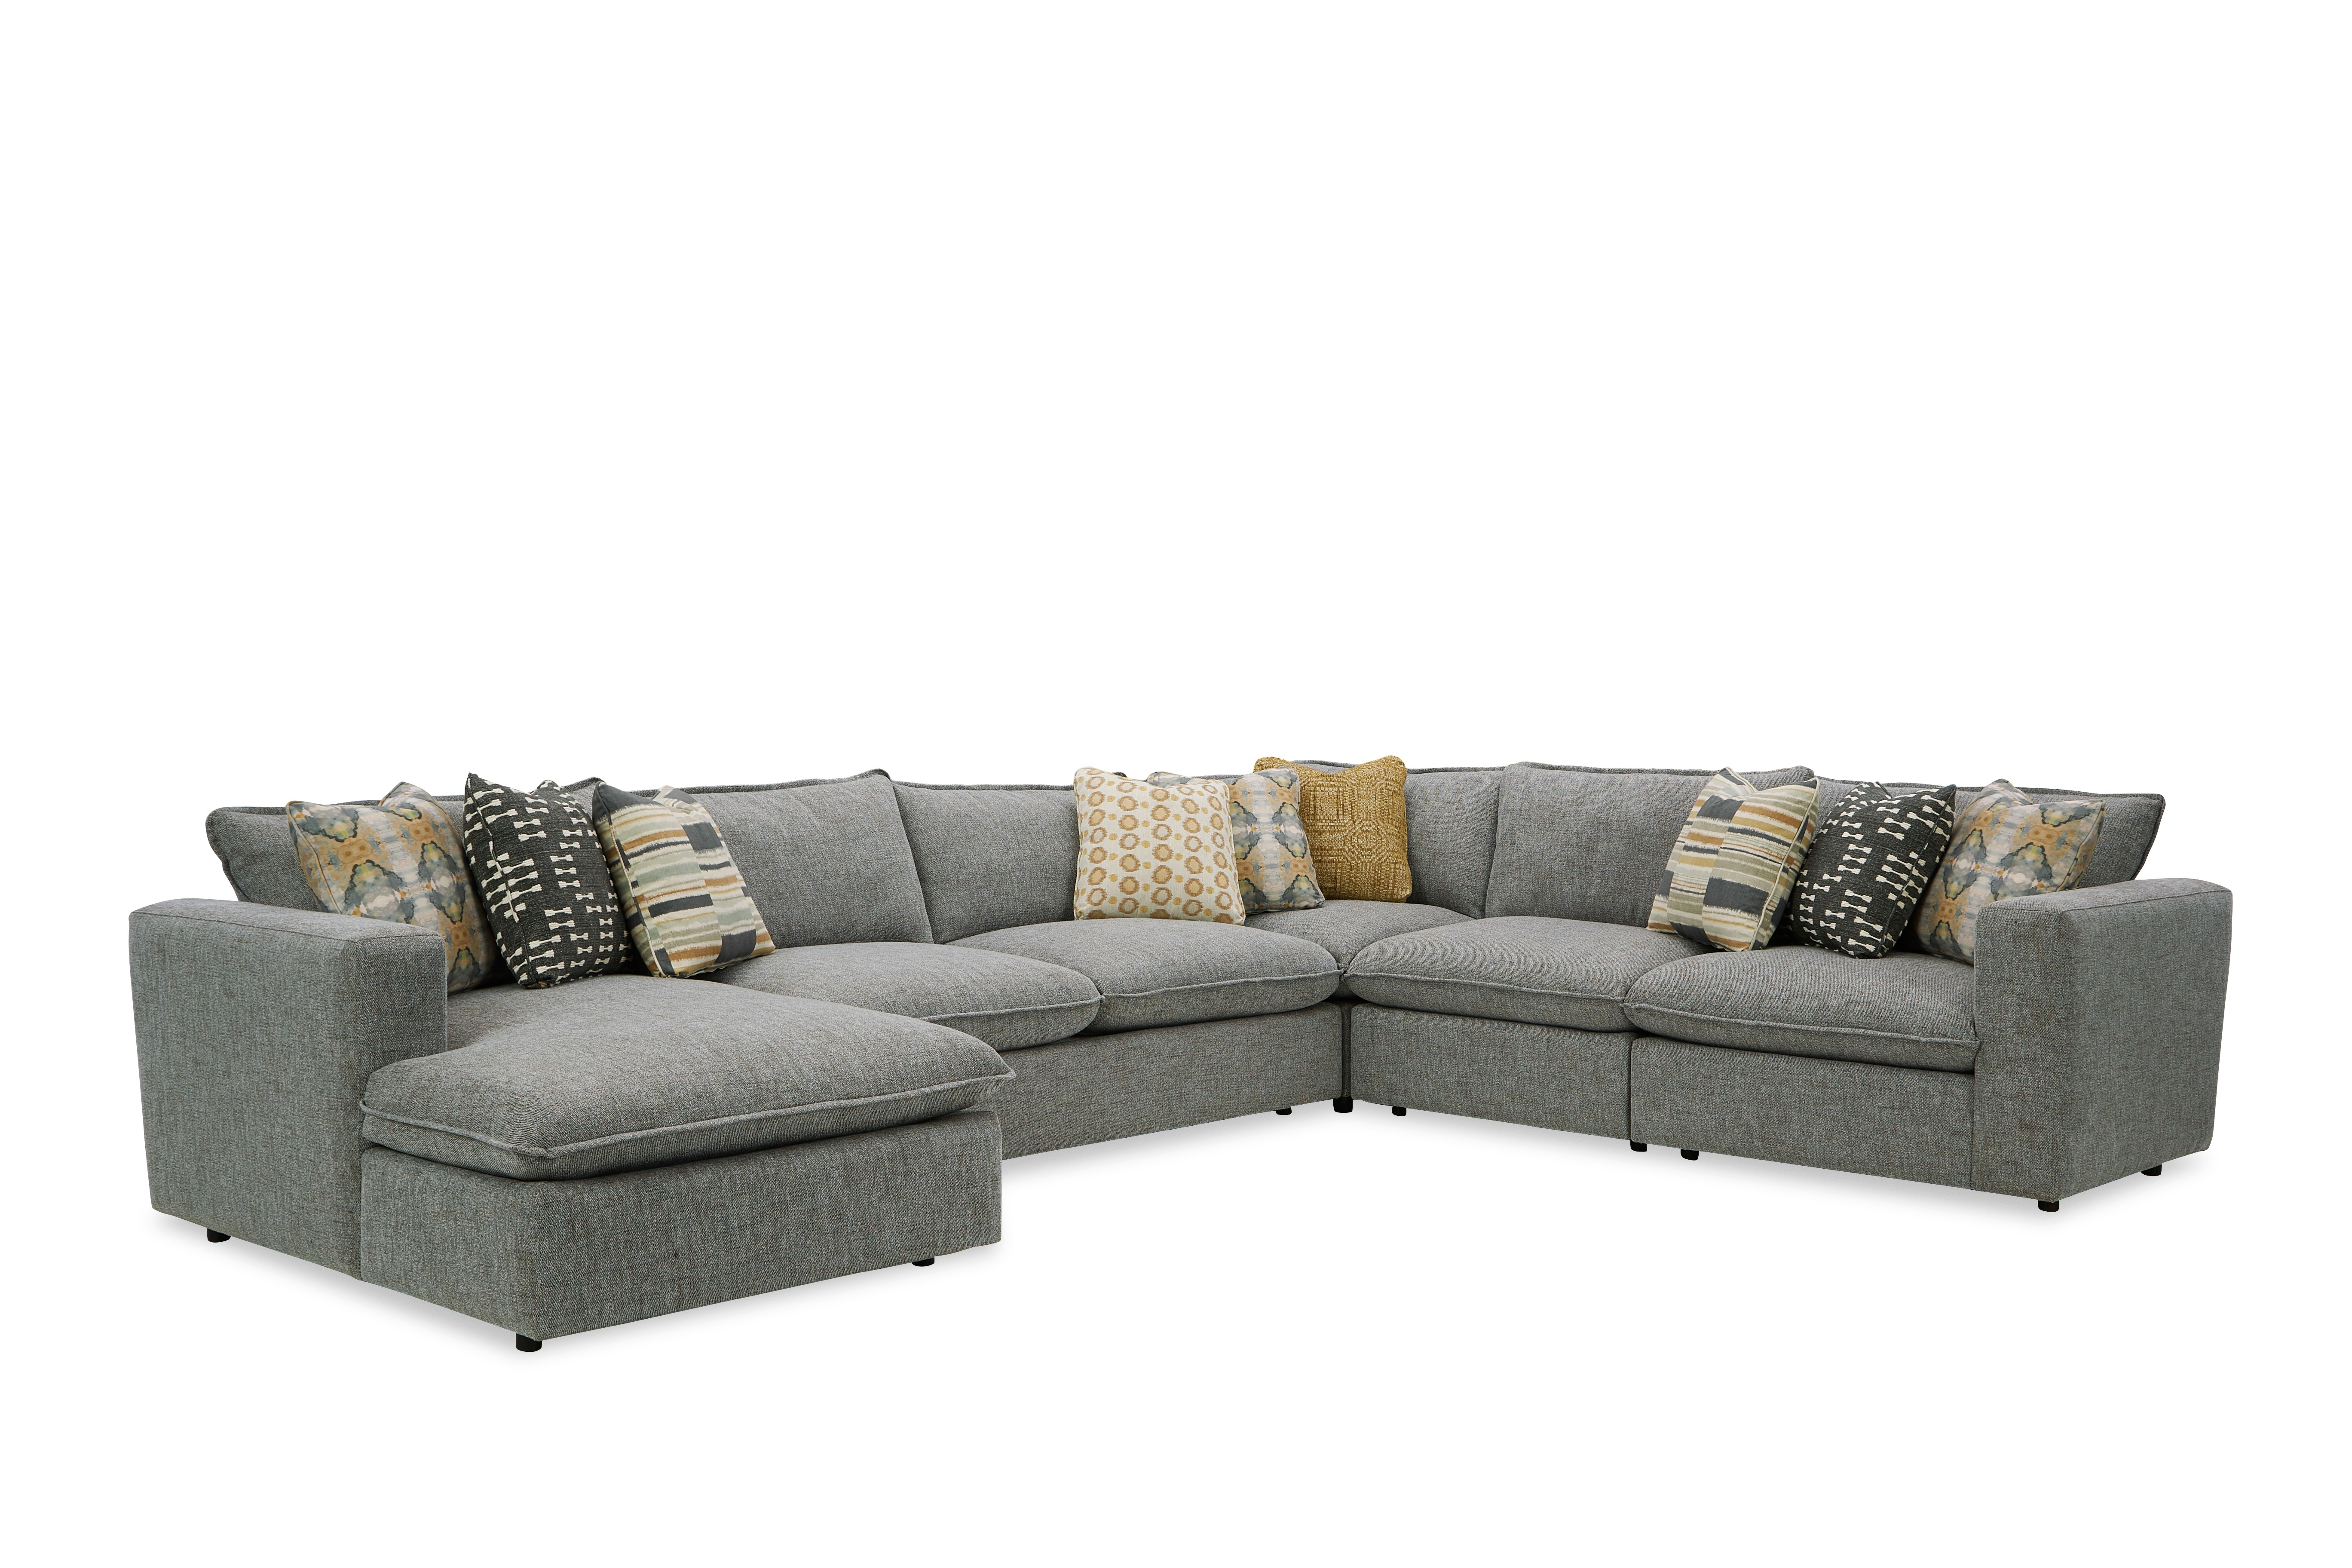 712741BD Sectional Sofa with Large Chaise by Craftmaster at Bullard Furniture